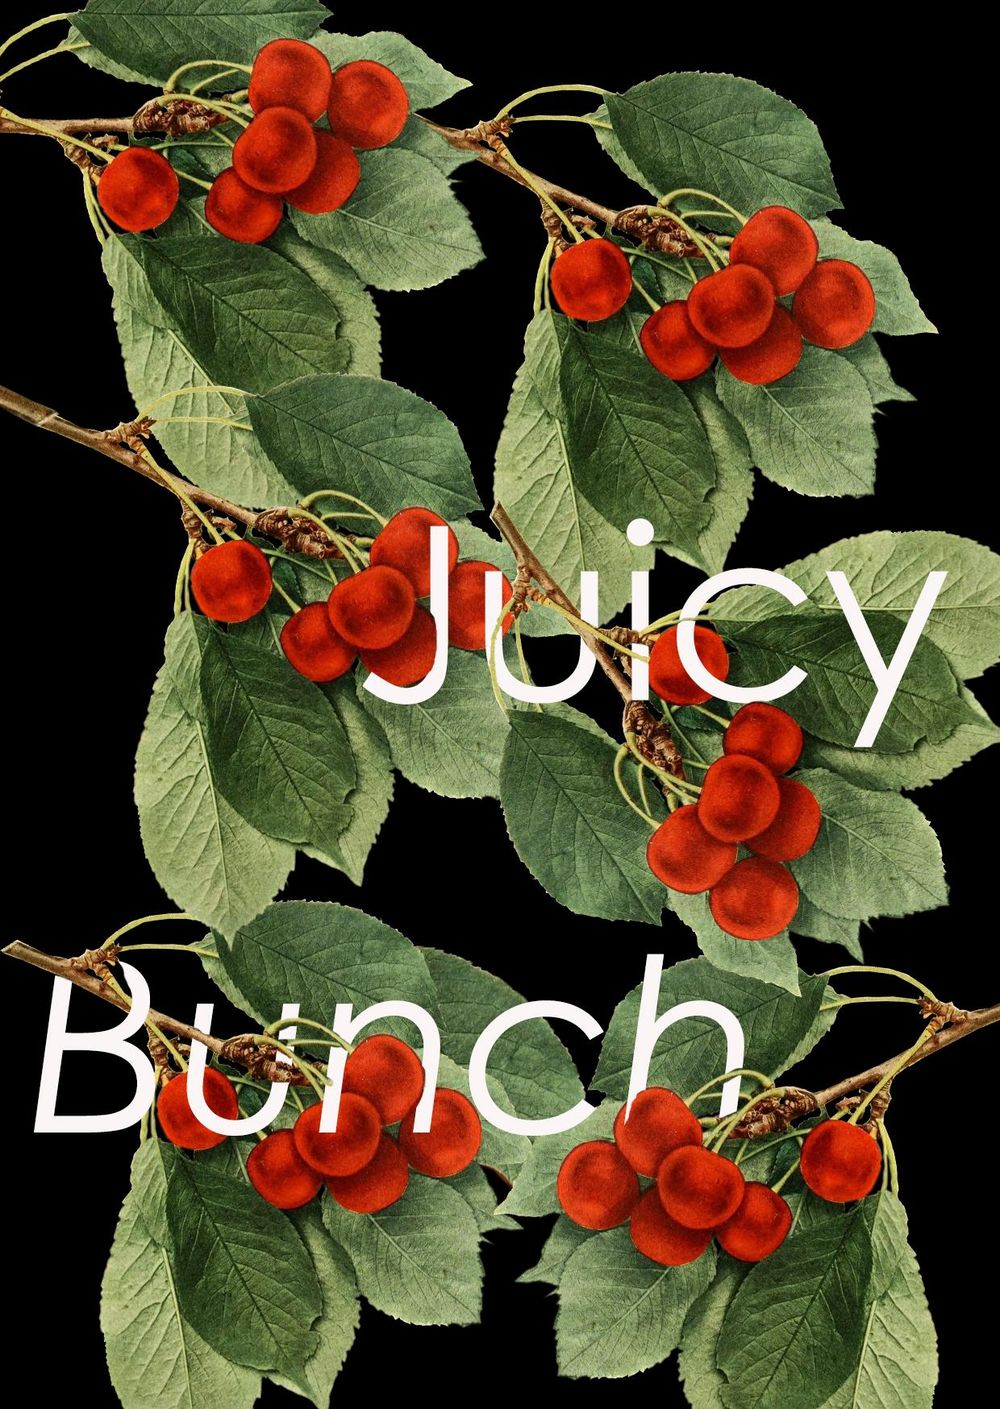 Juicy Bunch - image 1 - student project